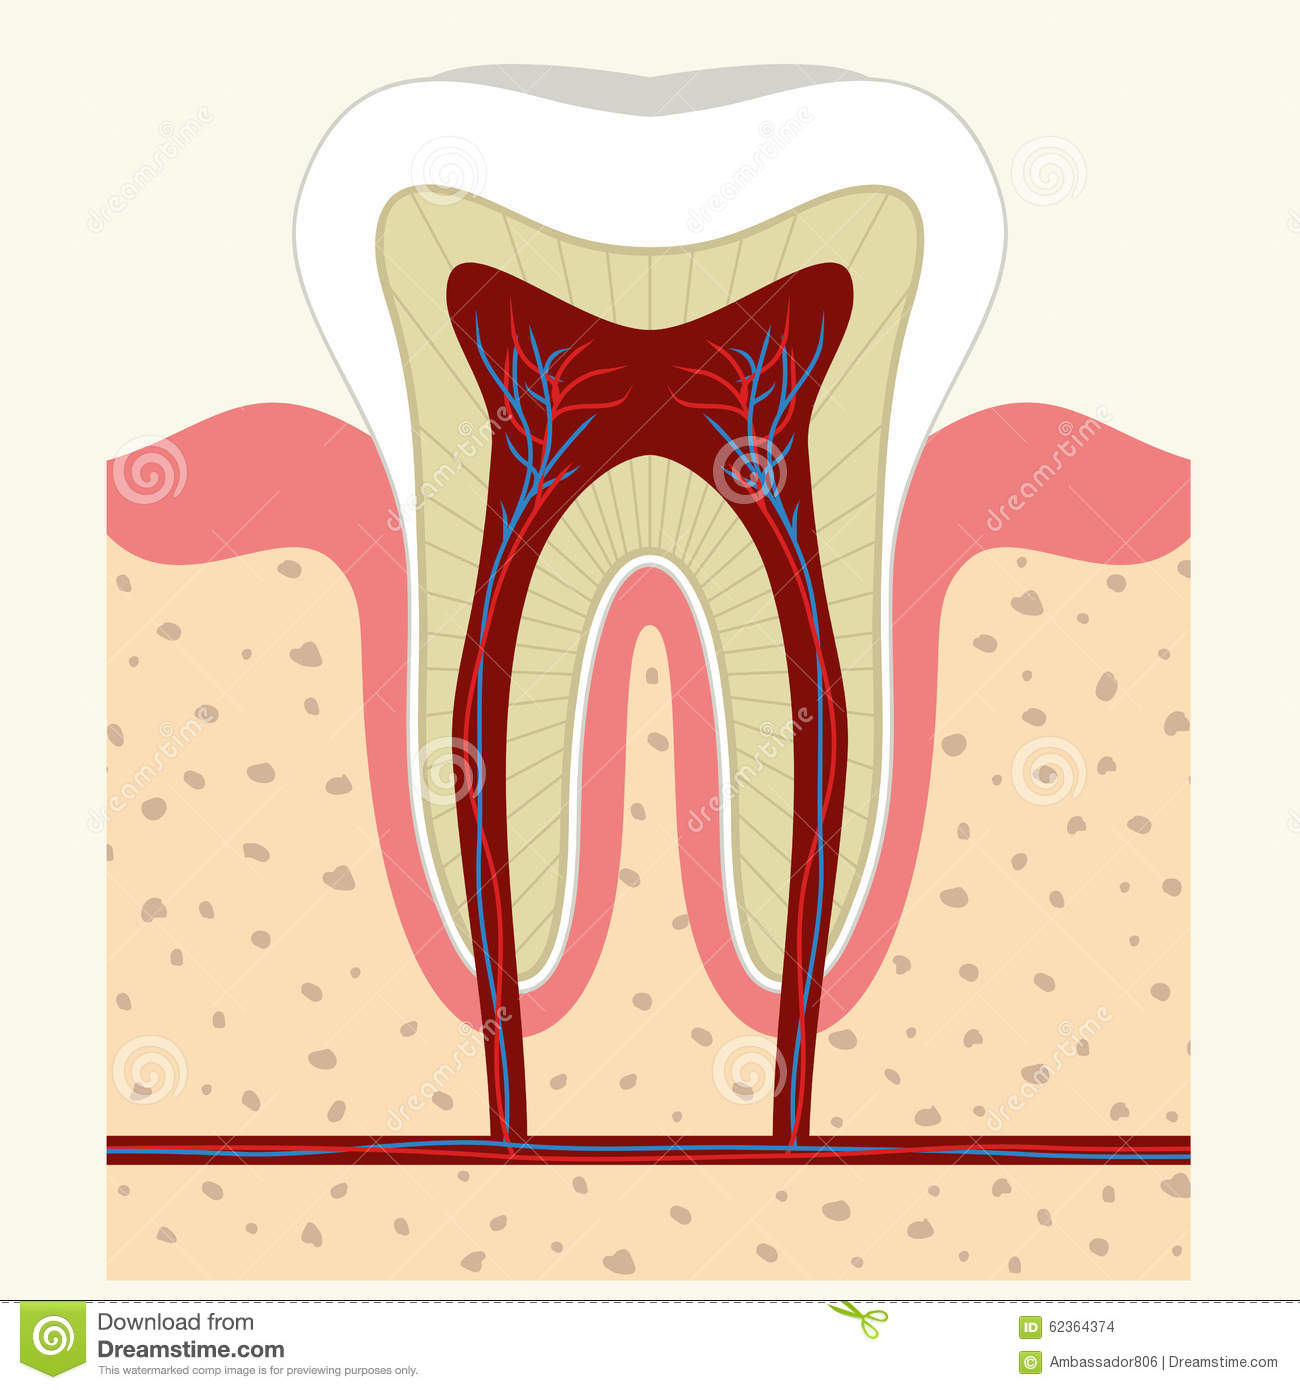 Human Tooth And Gum Anatomy Stock Vector - Illustration of ache ...